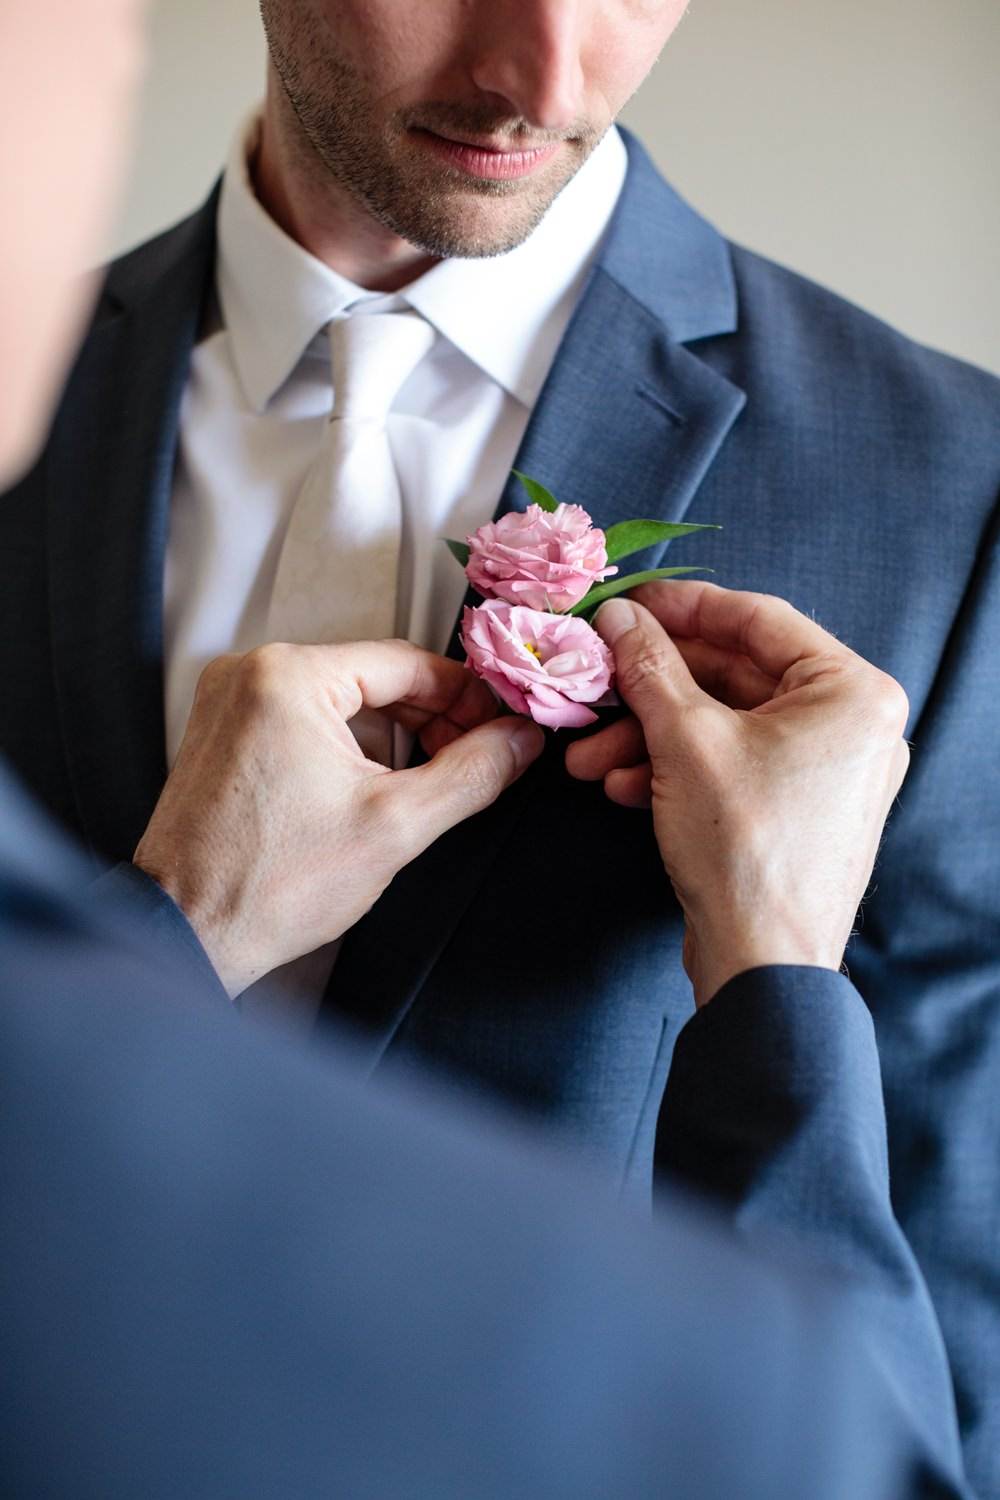 Groom Buttonhole Flowers Pink Rose Los Cabos Wedding Anna Gomes Photo